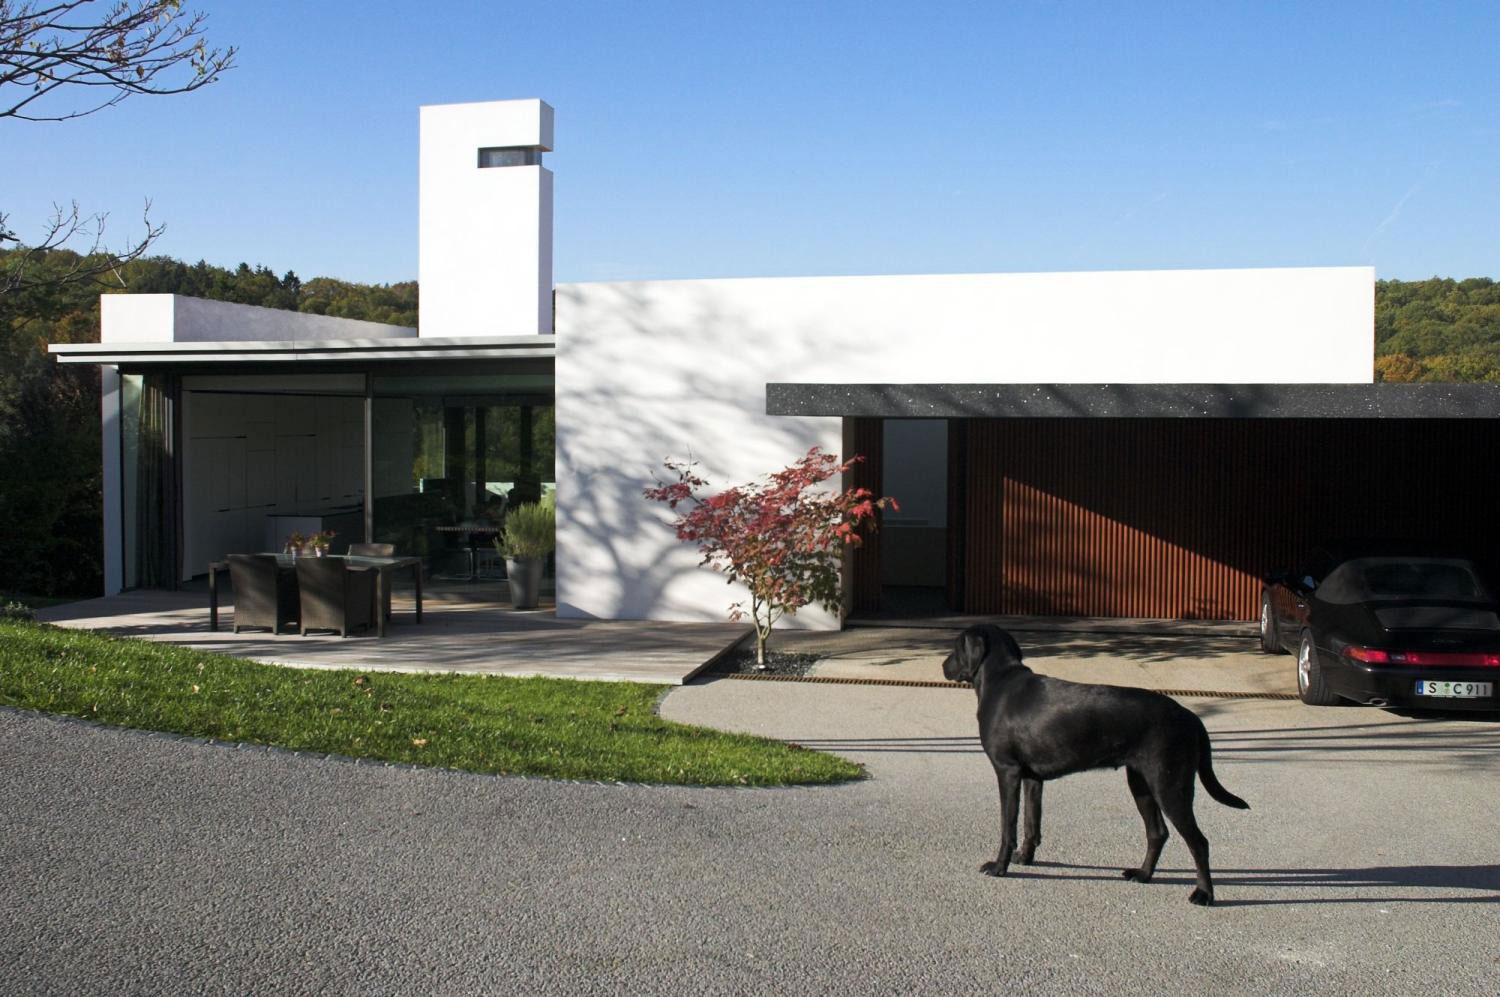 House B-Wald by Alexander Brenner (3)